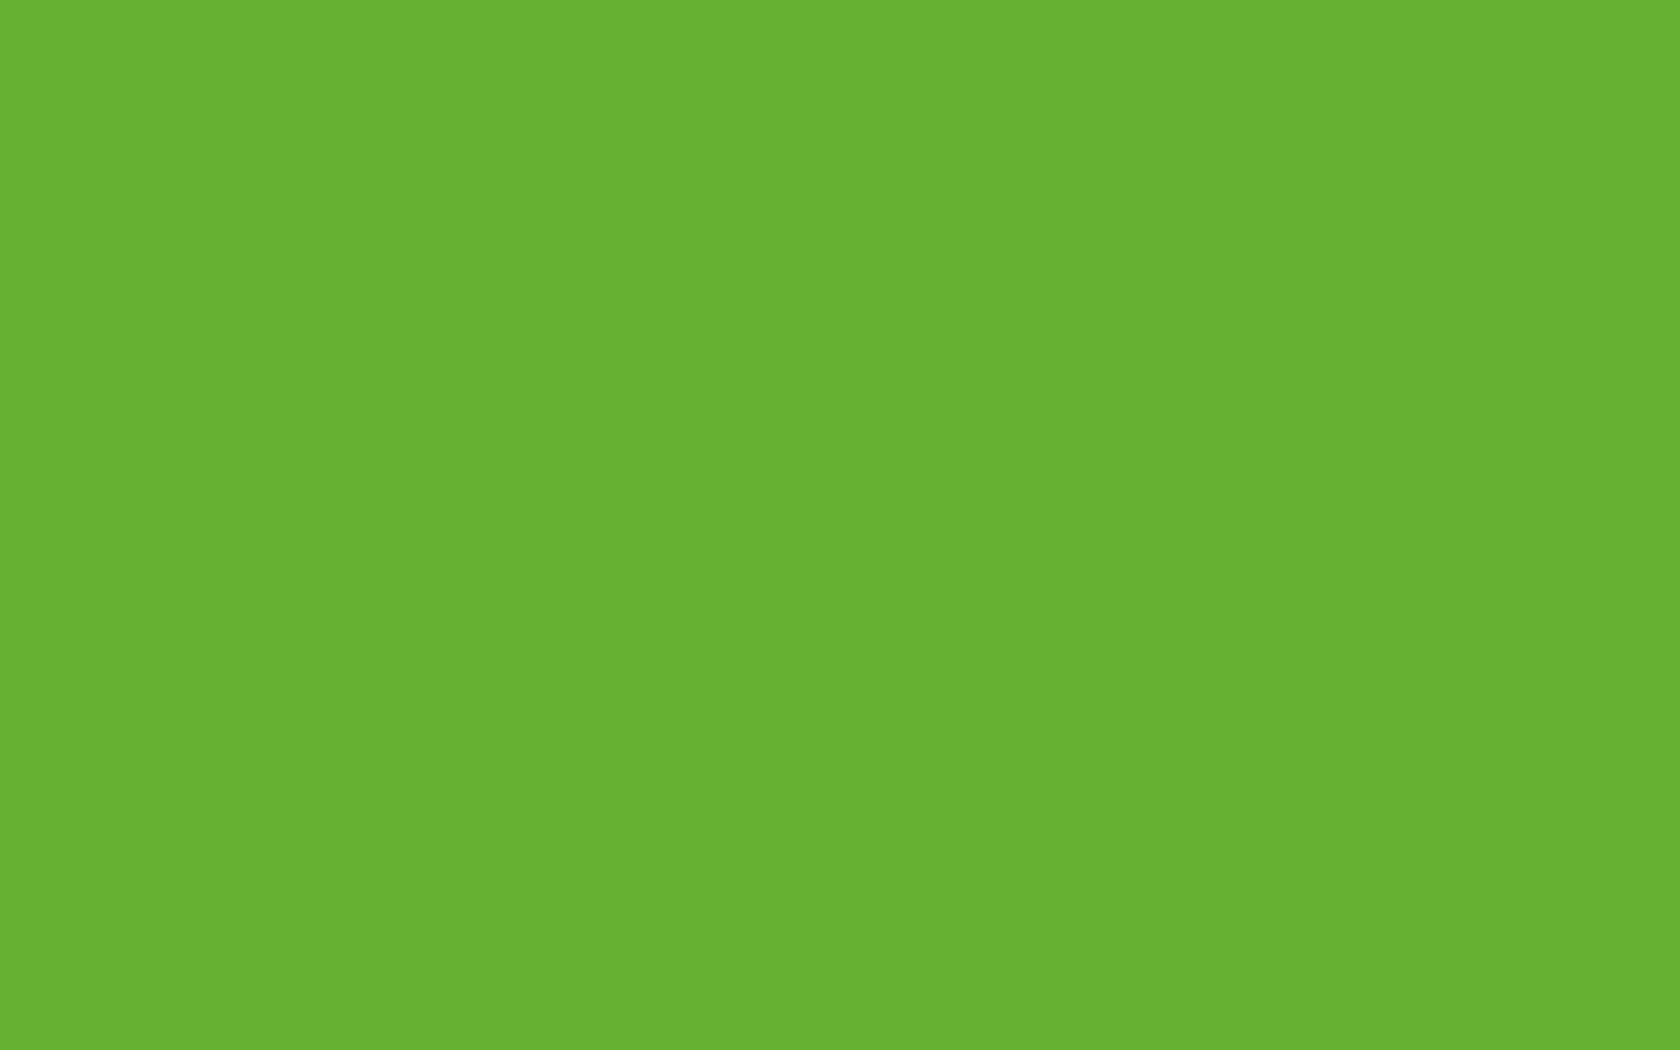 1680x1050 Green RYB Solid Color Background